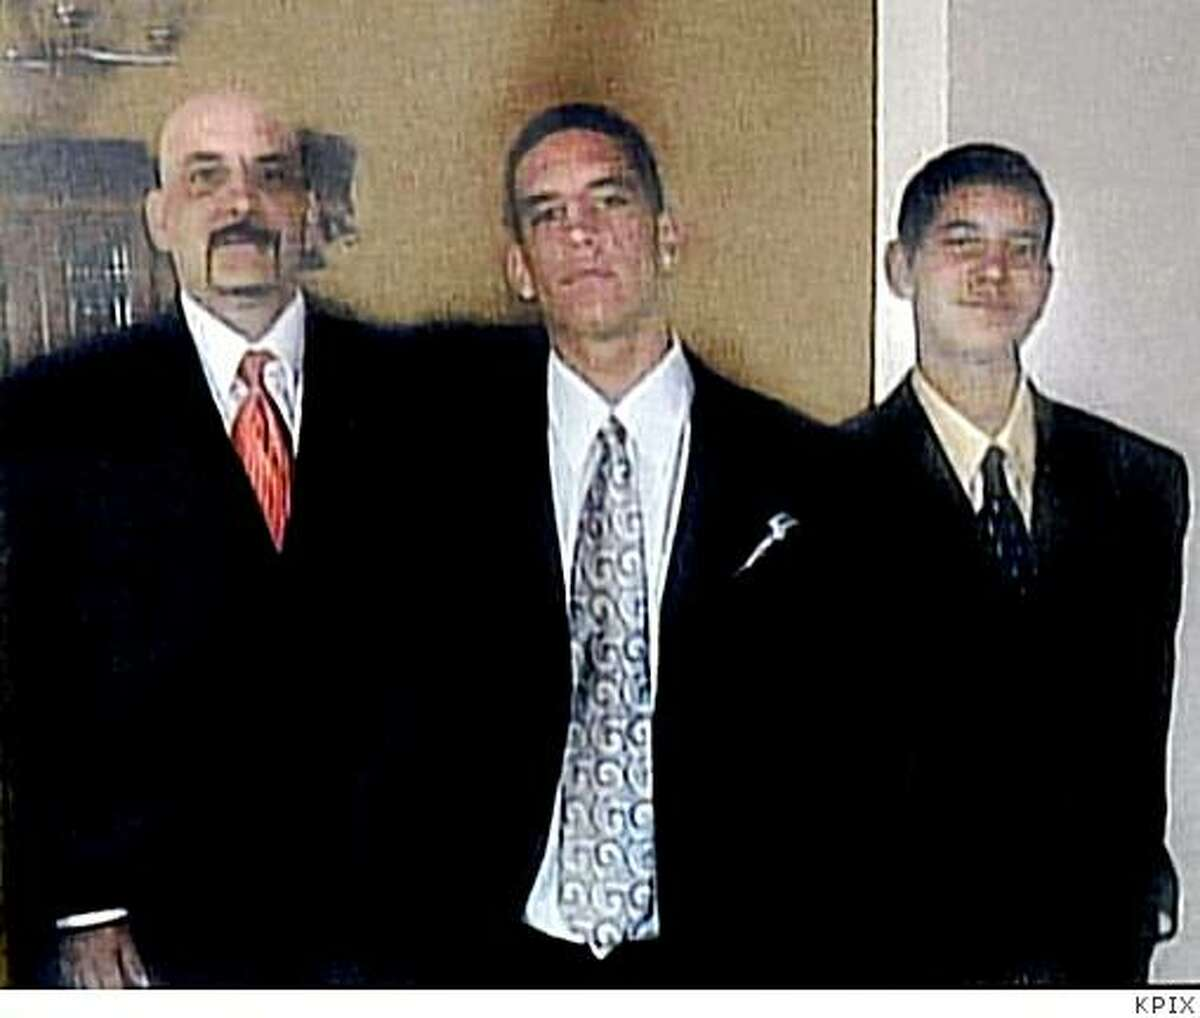 Anthony Bologna, left, and his two sons, Michael, 20, and Matthew, 16, were shot and killed on Sunday, June 22, 2008 in San Francisco, Calif. Edwin Ramos, 21, of El Sobrante was arrested in the slayings. Photo Courtesy to the Chronicle / KPIX